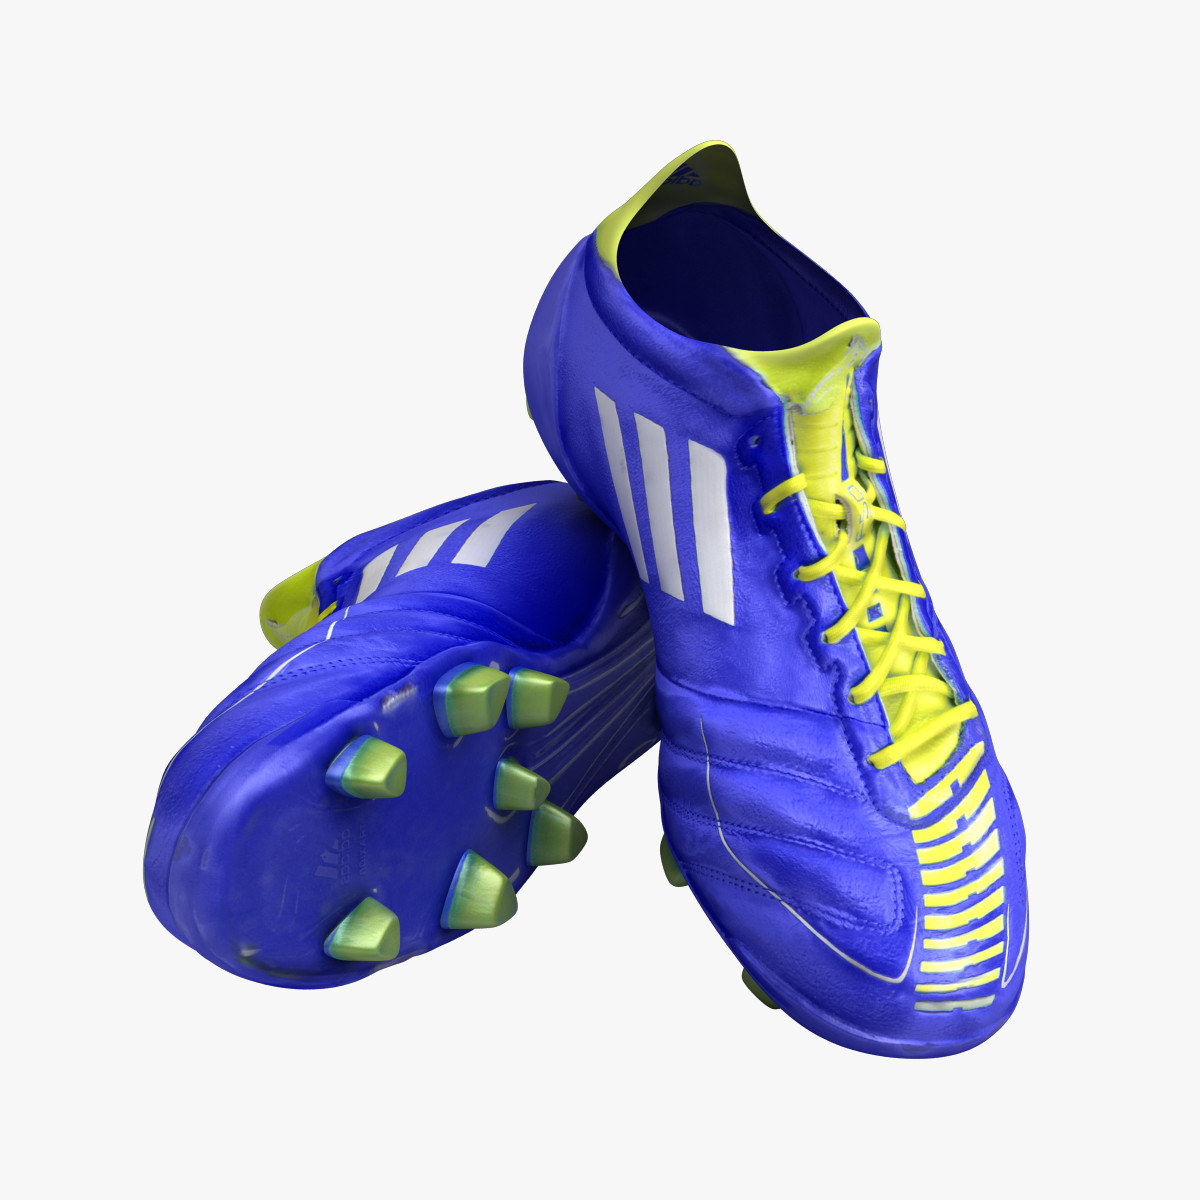 cleats01.png